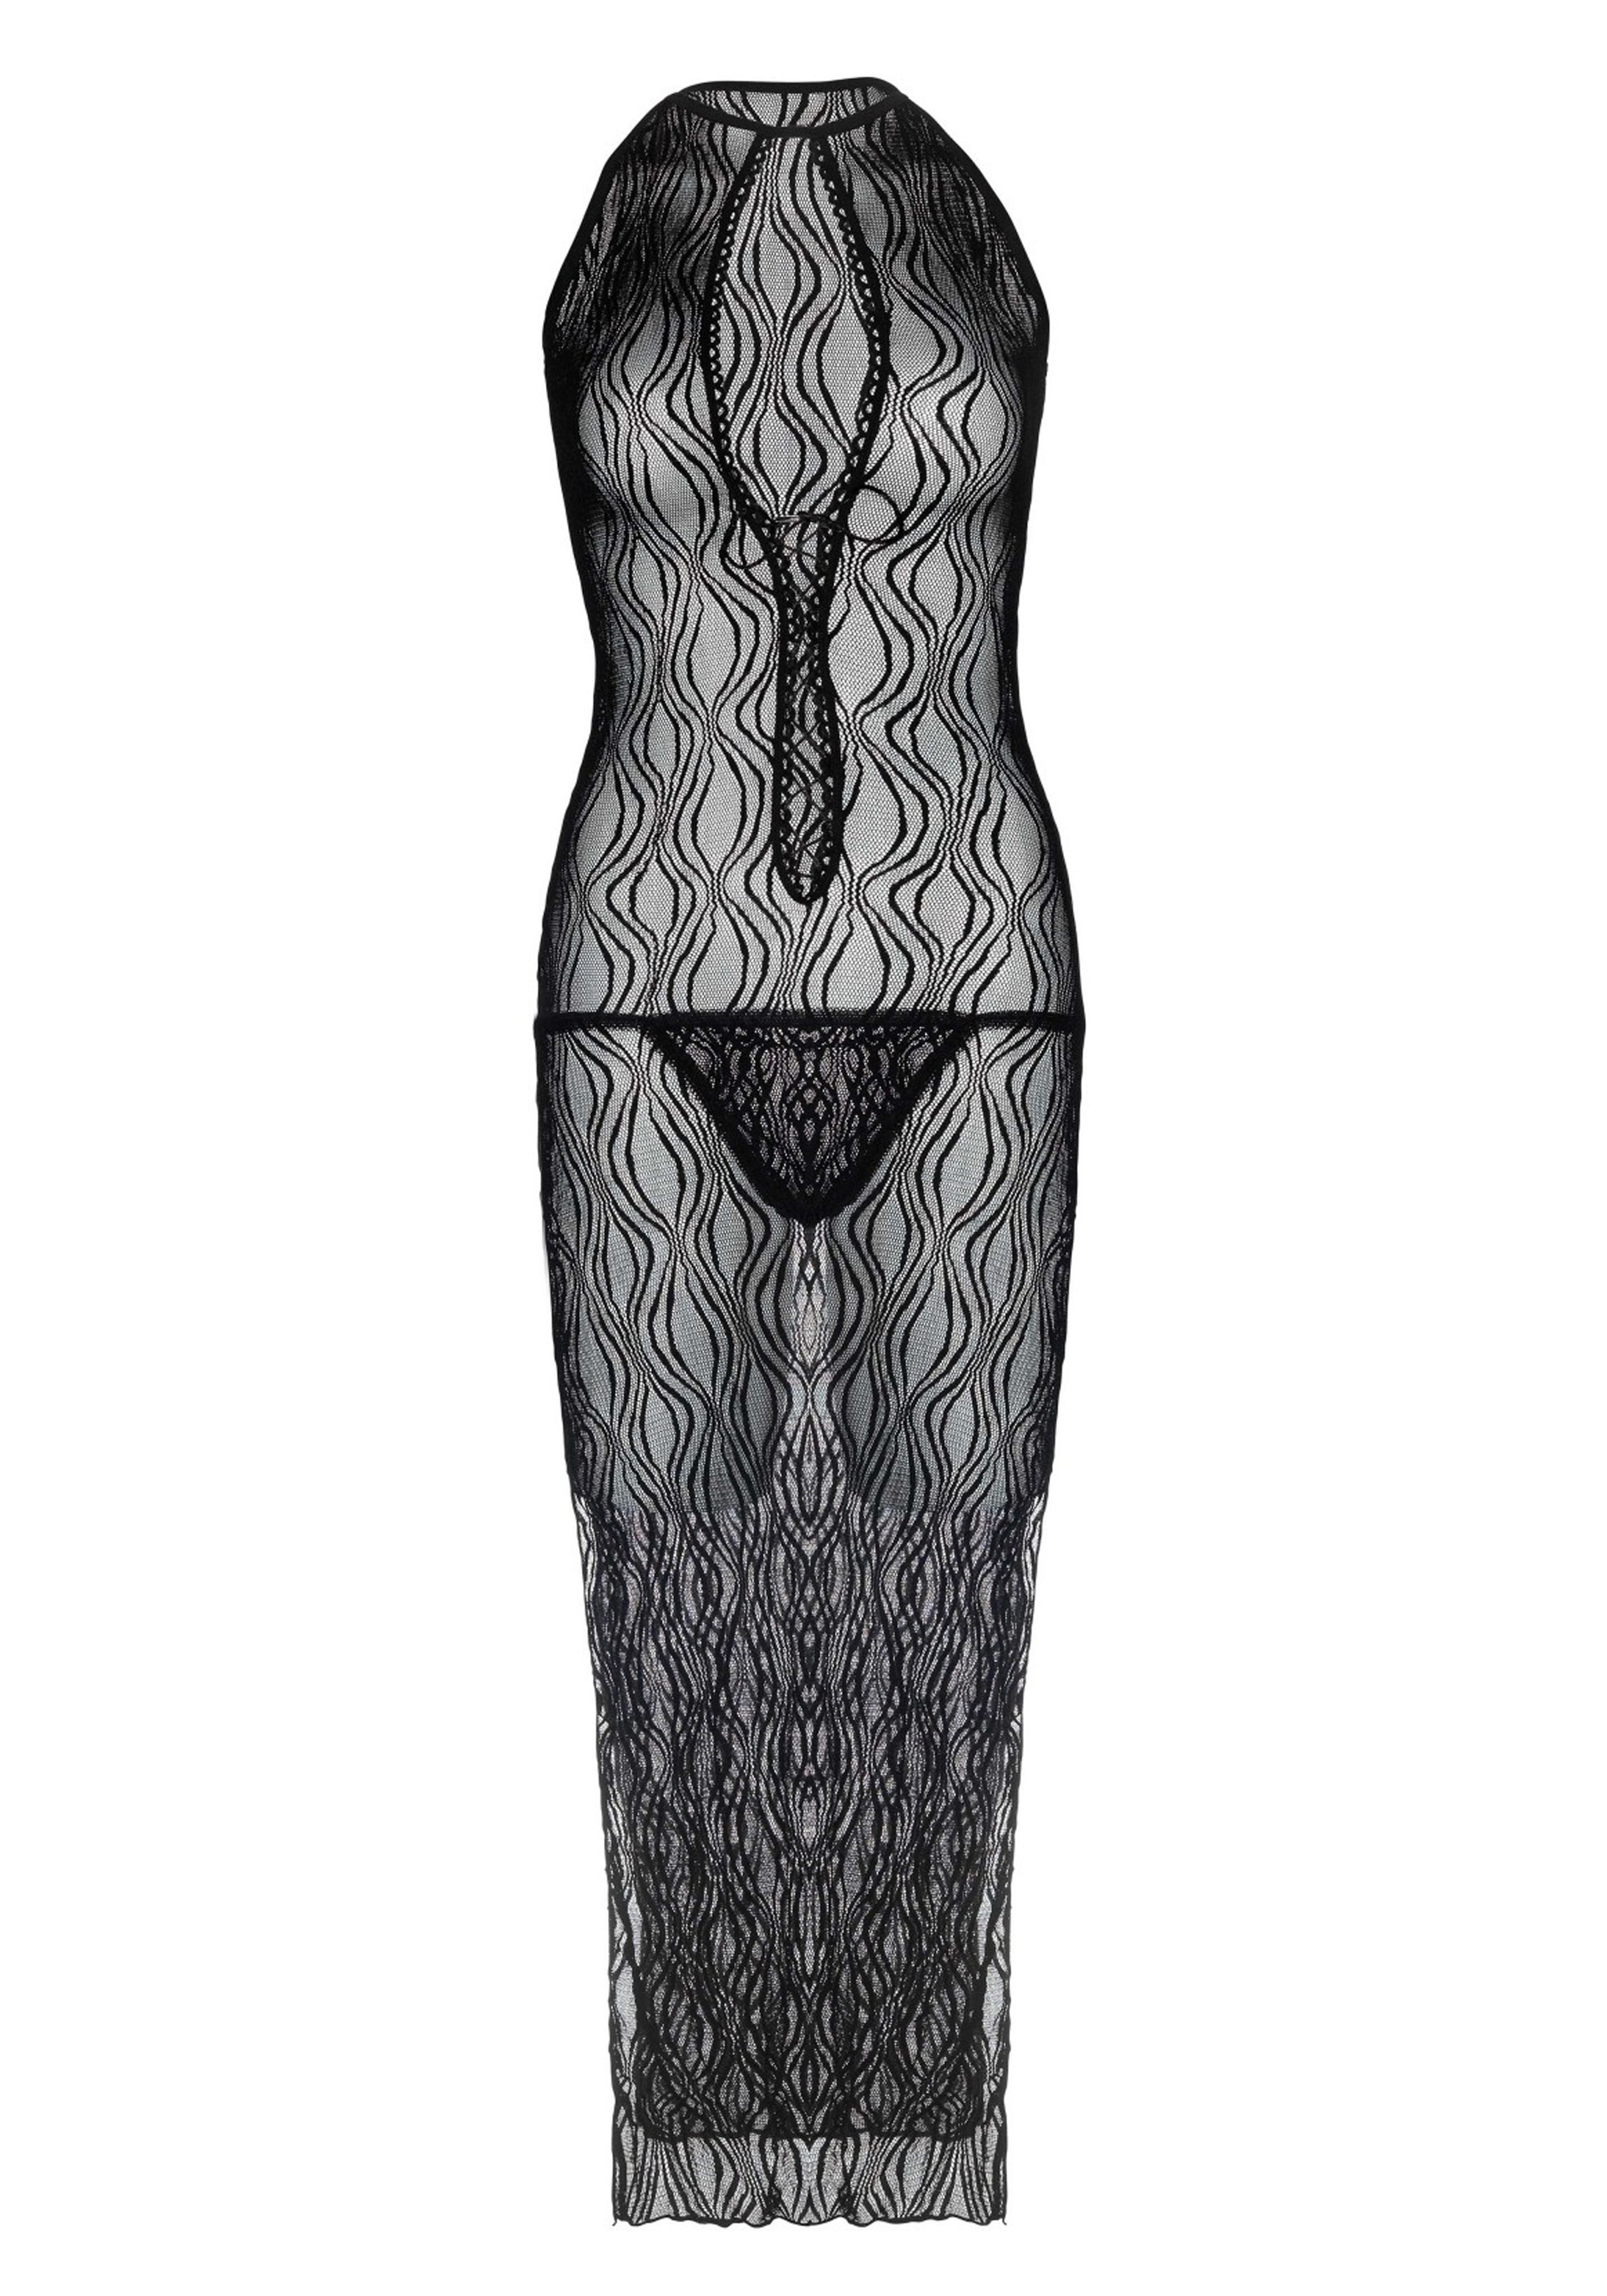 Swirl Lace Long Dress With Lace Up Front With G-String